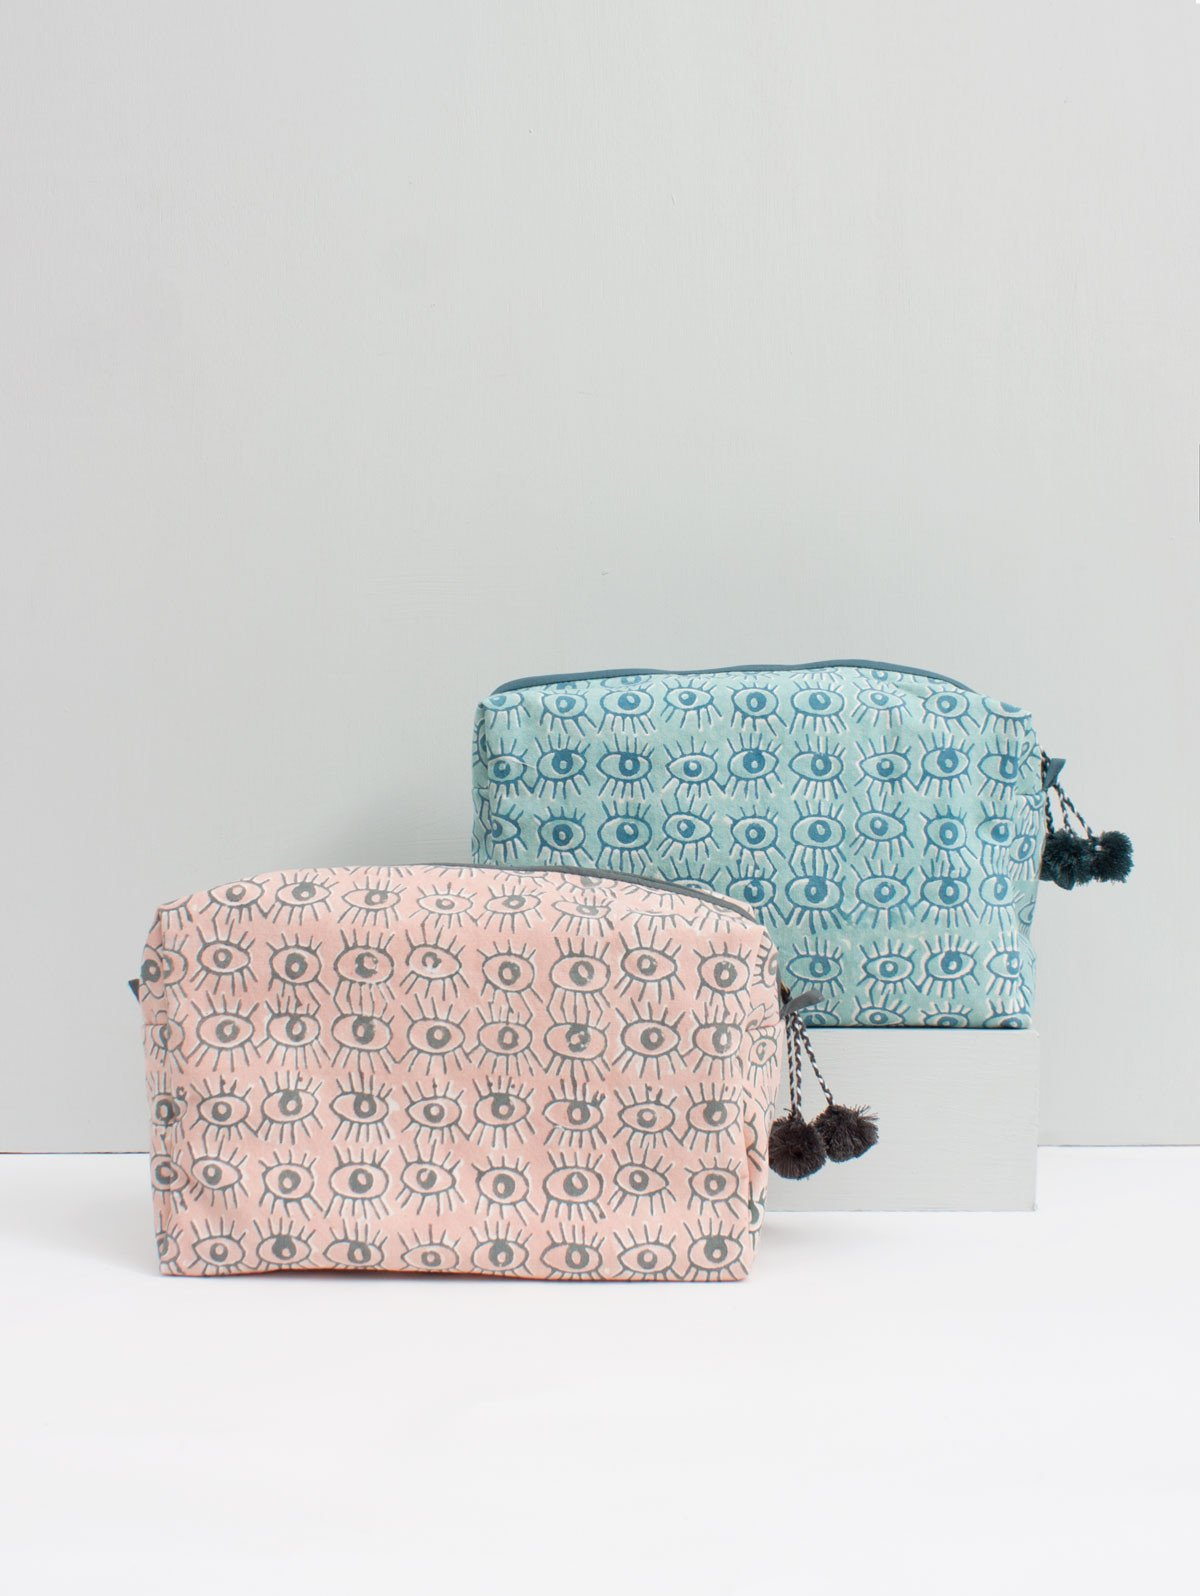 Bohemia Design Eye Print Cosmetic Case. Rectangular gusseted cosmetic bag made from lightweight cotton and finished with tonal pom pom detailing on the zipper. Block printed with evil eye pattern. 10 inches by 6 inches. 4 inch gusset. Colors Blush Duck Blue. 100% Cotton Canvas with Waterproof Lining. One size.